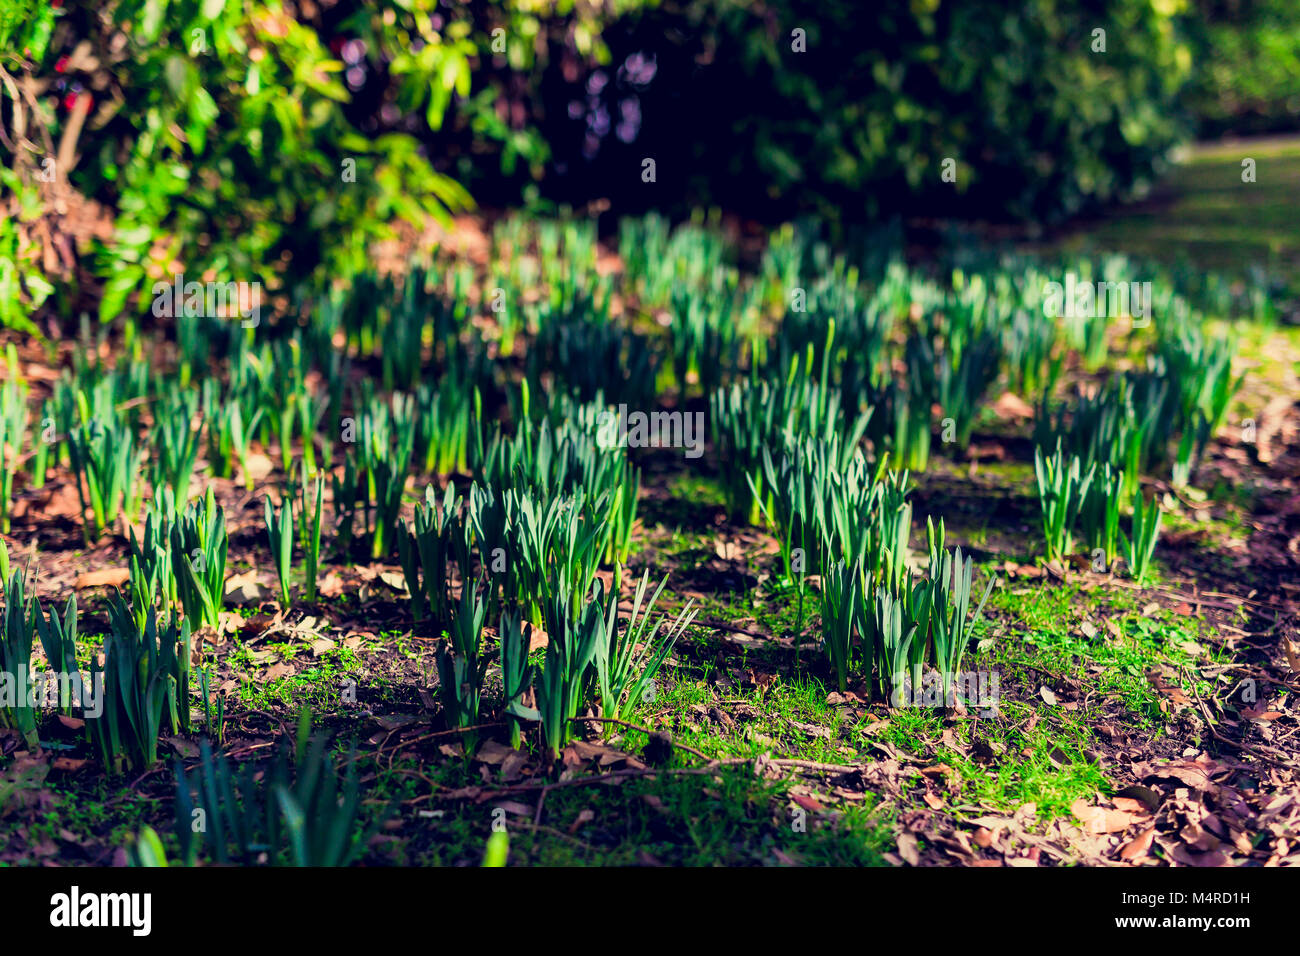 daffodils plants about to bloom in a meadow with sunlight on them - Stock Image